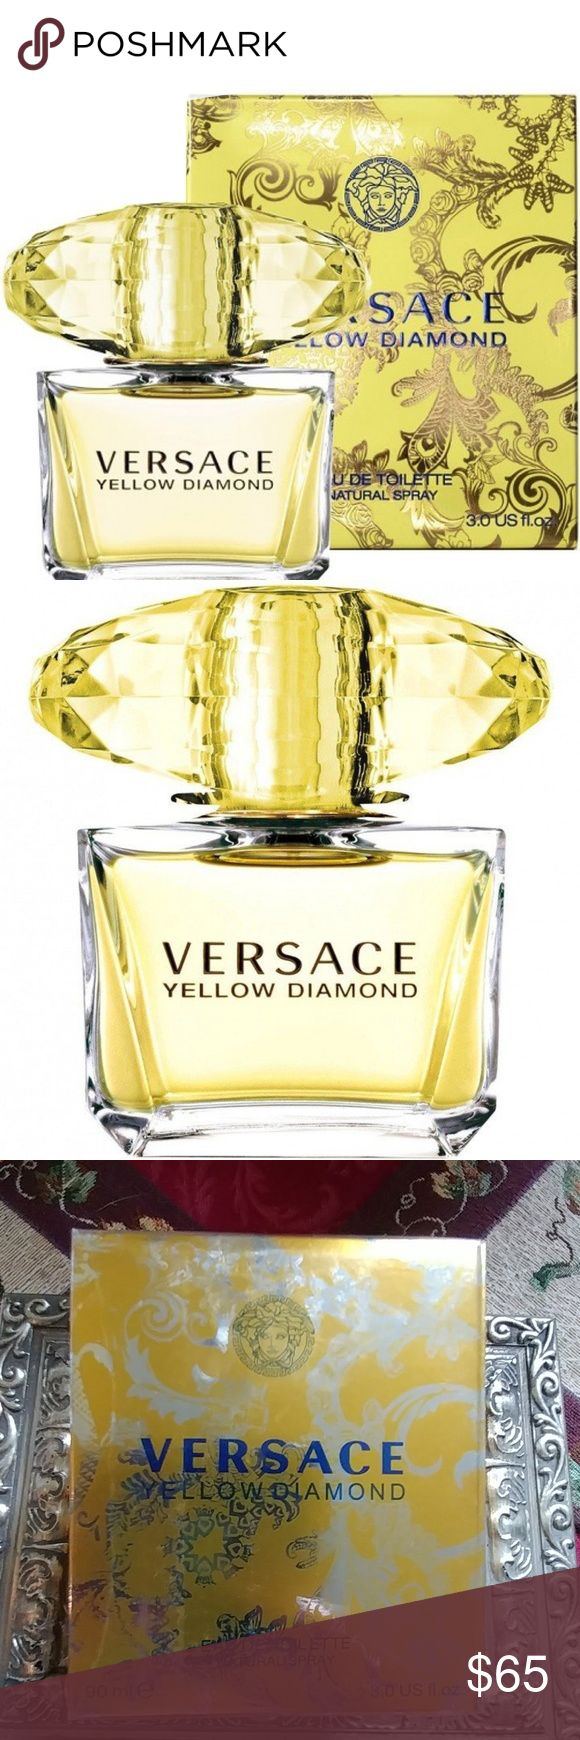 Versace Yellow Diamond Edt Spray For Women Versace Yellow Diamond Edt Spray For Women New/Sealed retail box  Pure sensuality, pure transparency, pure light: Once more an authentic jewel of rare beauty unveiled in a fresh and vivid floral perfume. The unmistakable glamour of Versace. Notes: Citron from Diamante, Pear Sorbet, Neroli, Bergamot, Nymphea, Freesia, Orange Blossom, Mimosa, Amber Wood, Palo Santo, Musk Style: Surprising. Radiant. Fascinating. Versace Makeup